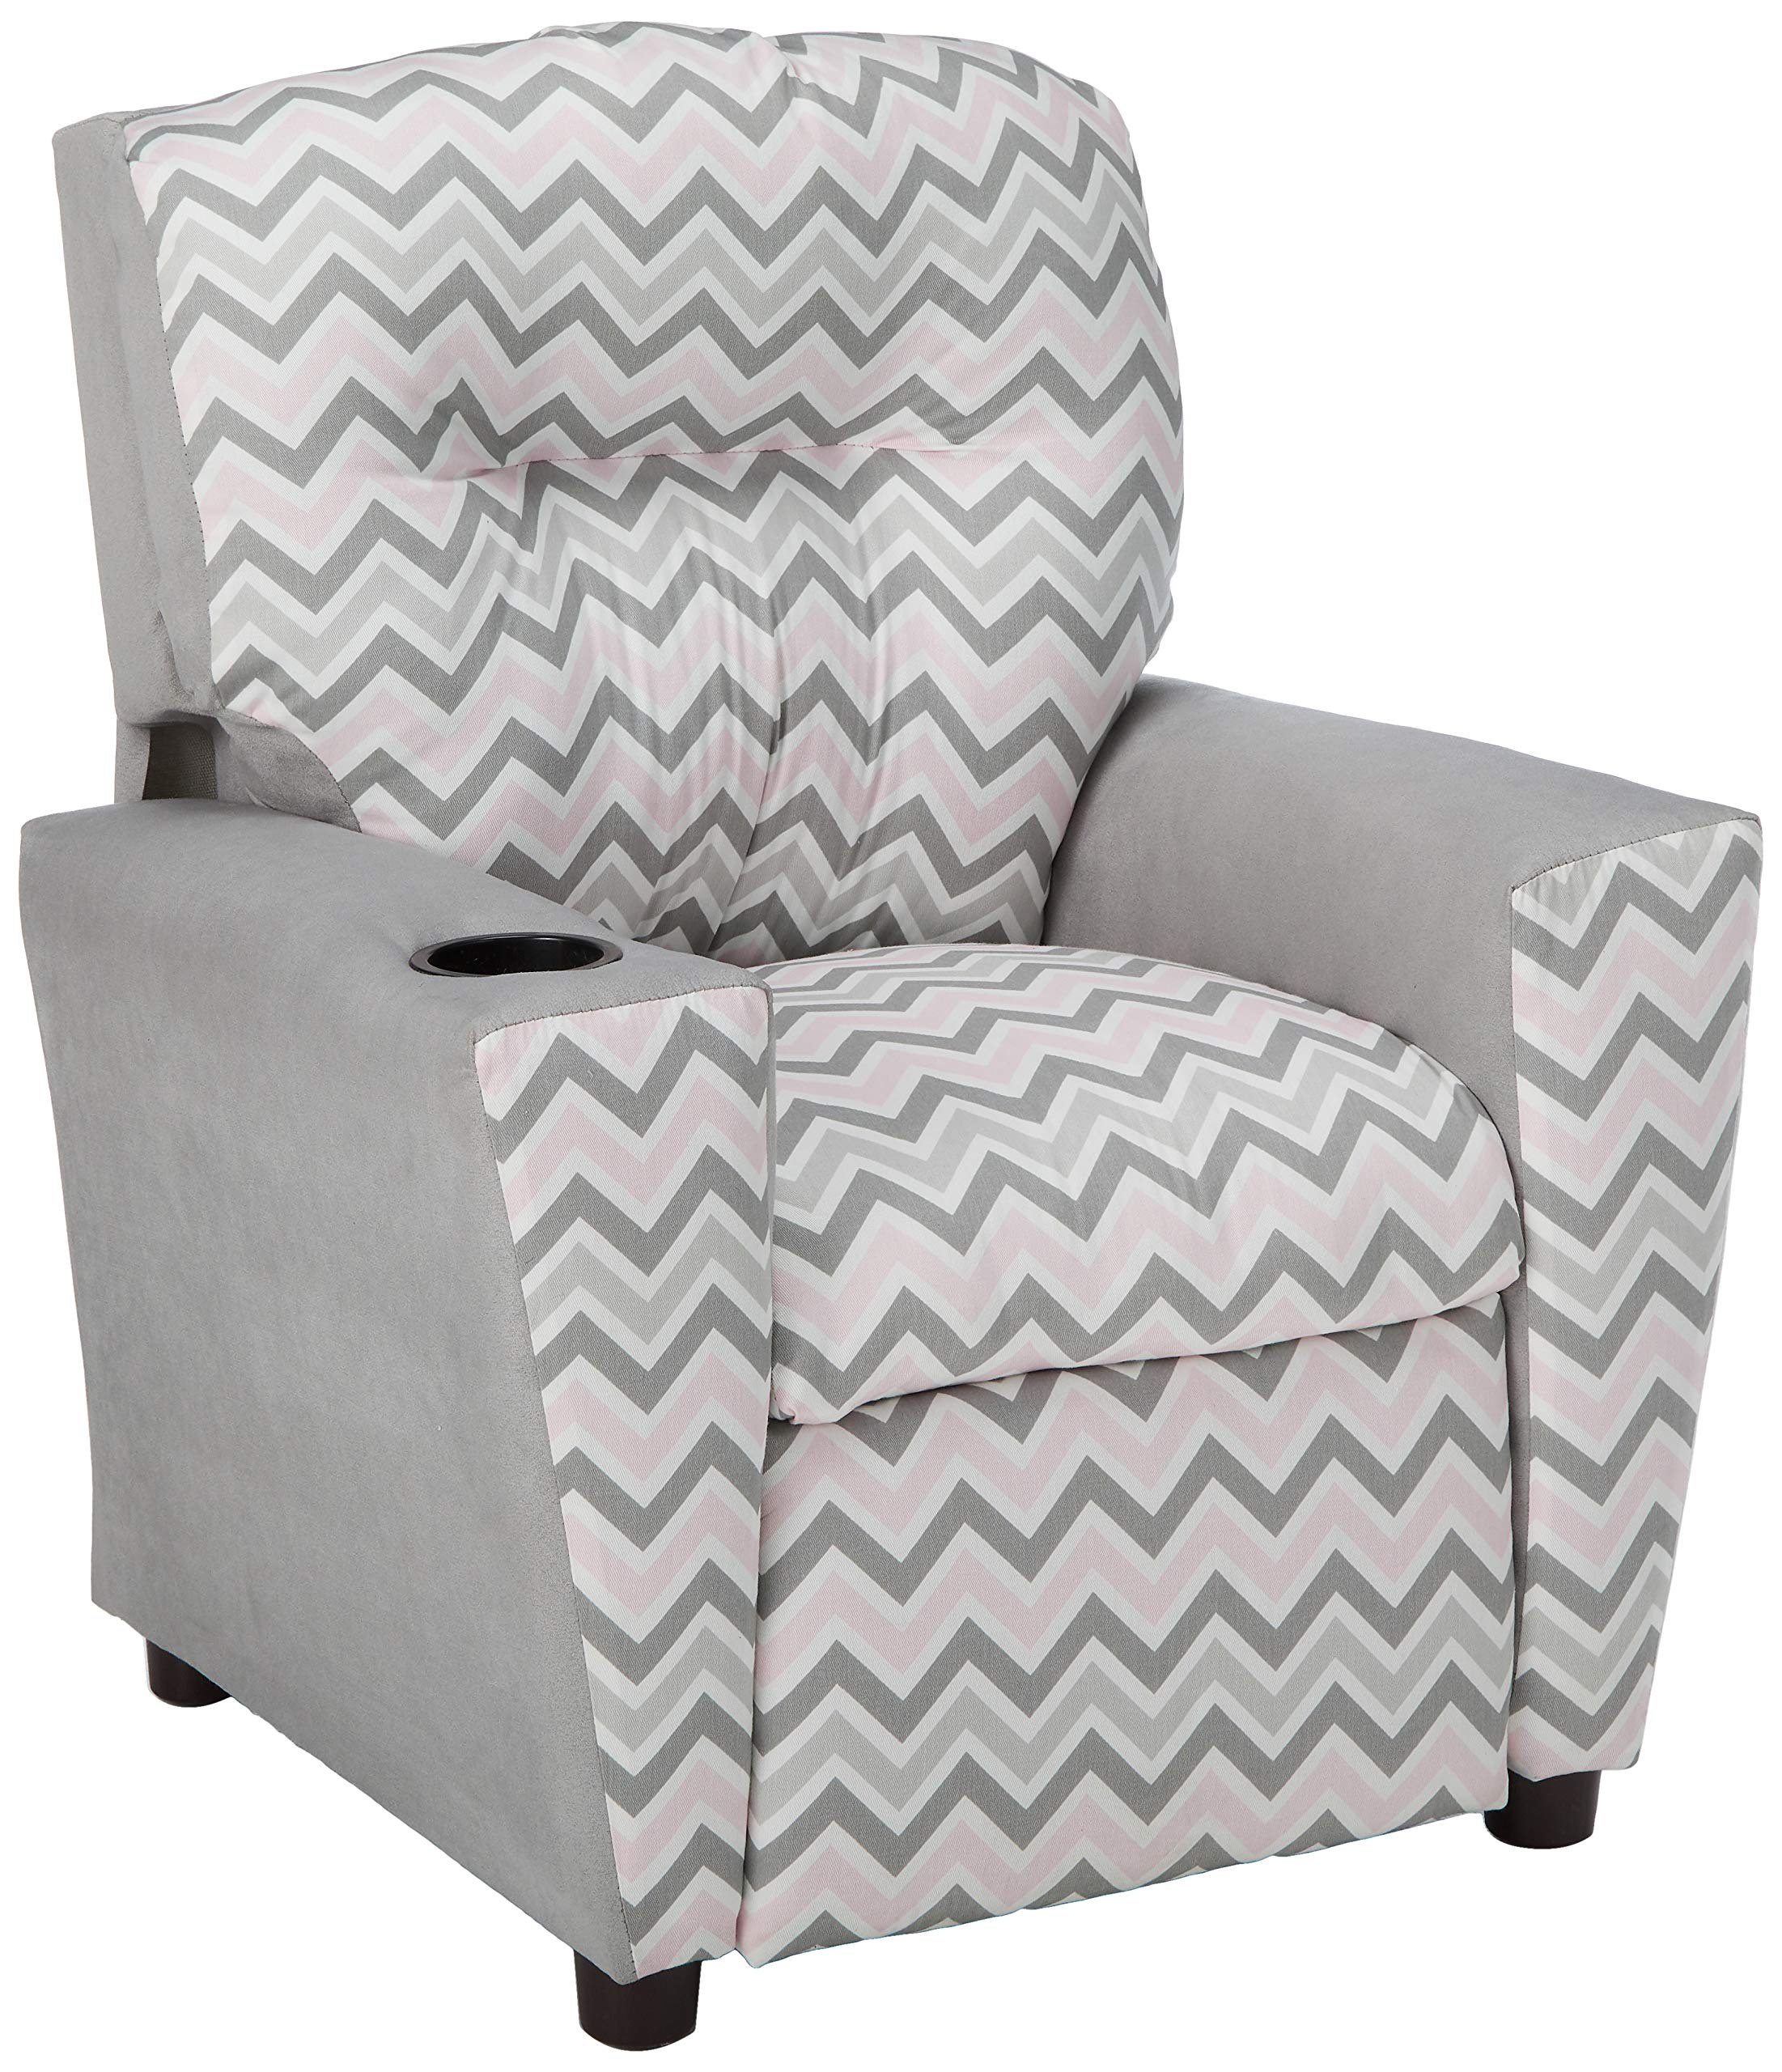 Kidz World Zoom Zoom Bella Storm Kid's Recliner with Cup Holder, Silver Suede by Kidz World